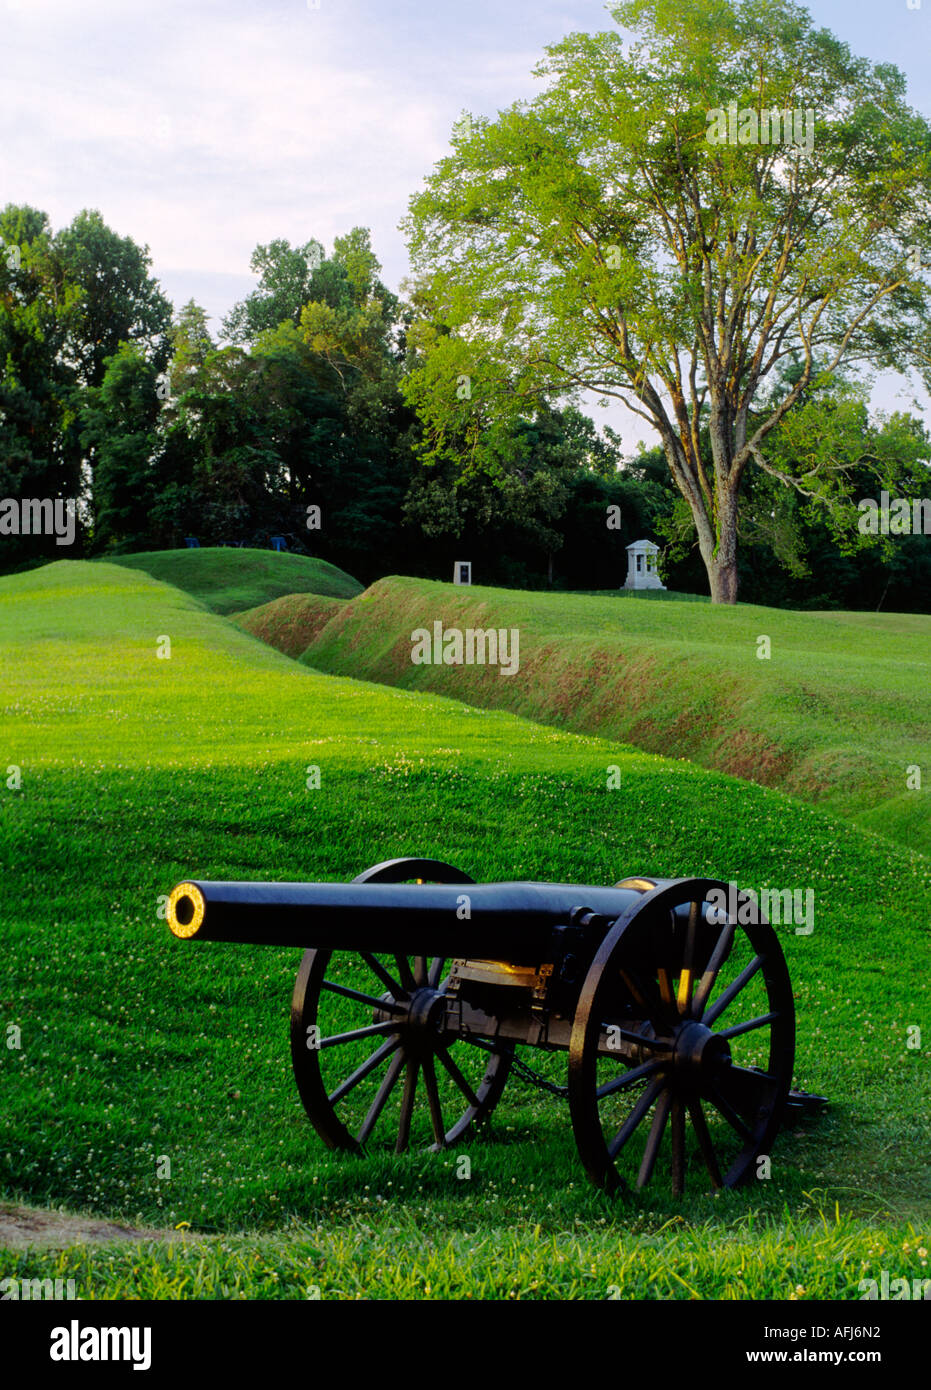 National Military Park at Vicksburg, Mississippi, USA. Civil War battlefield field gun cannon entrenchments emplacements - Stock Image